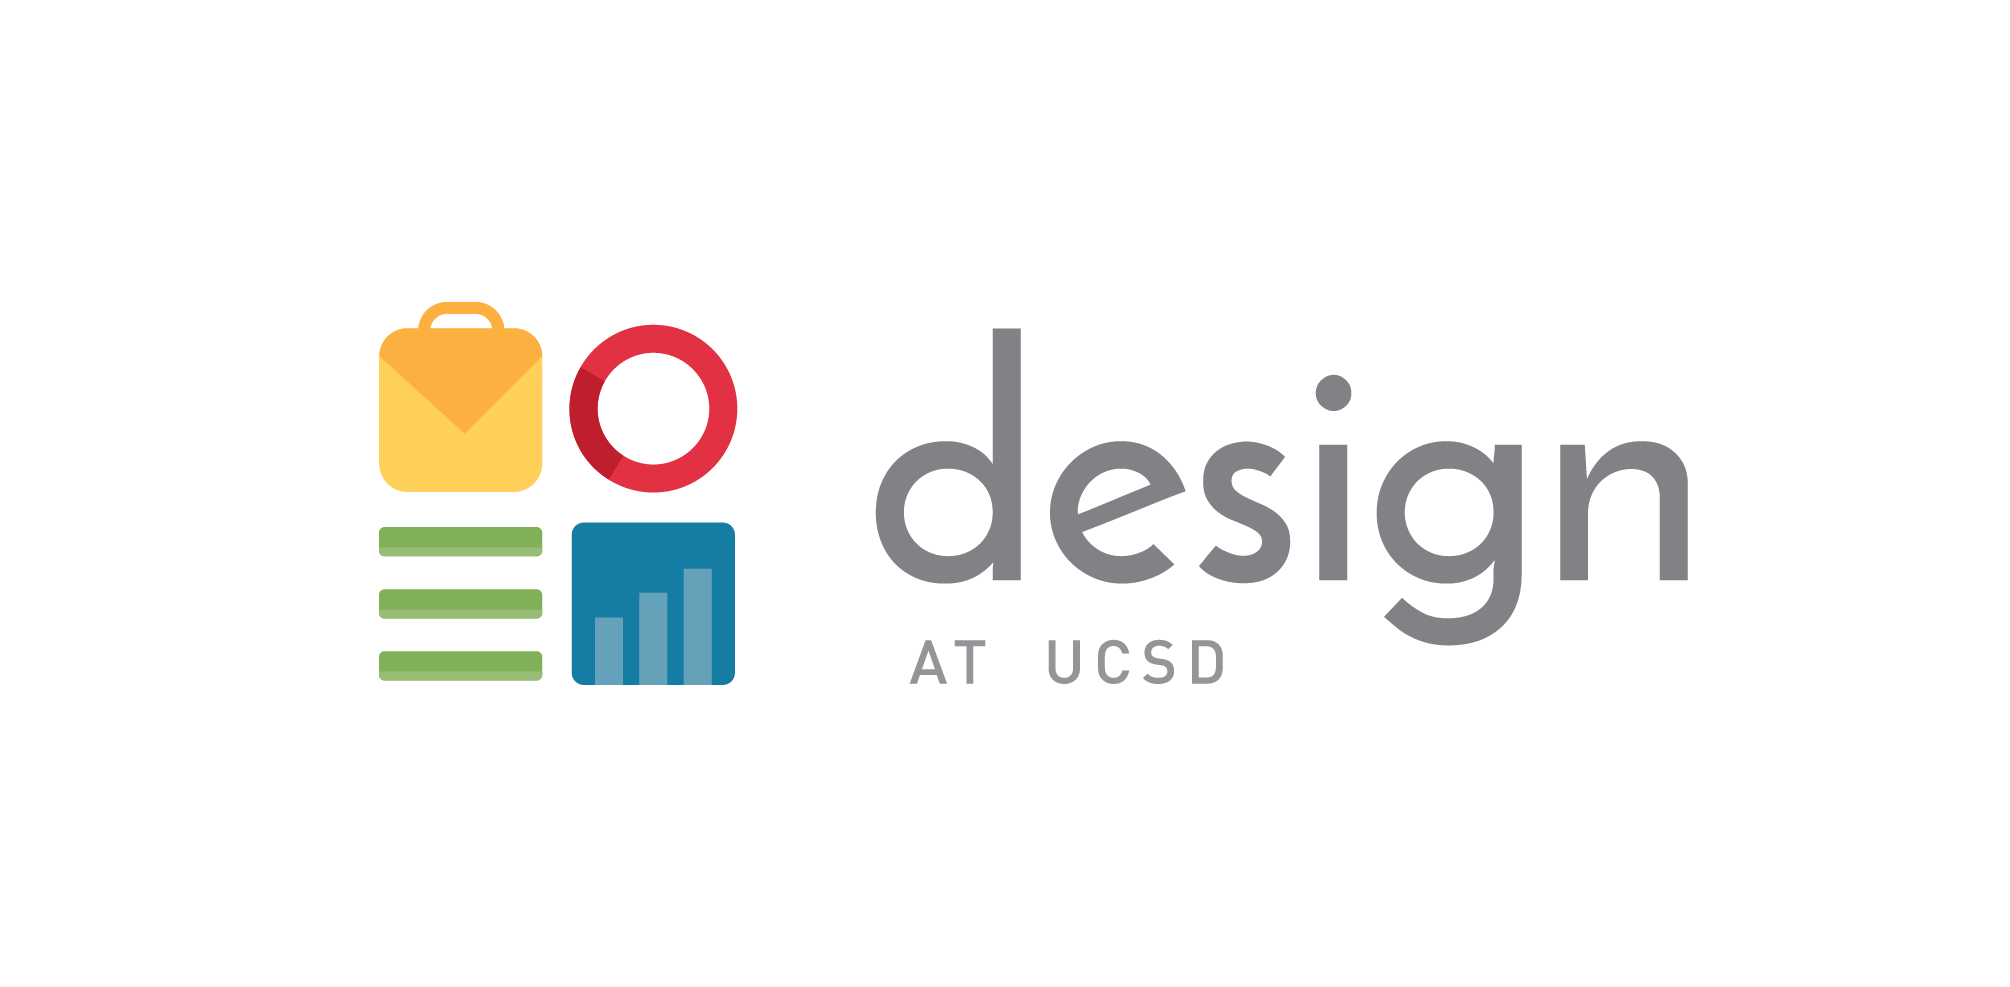 A before and after look at the Design at UCSD logo.